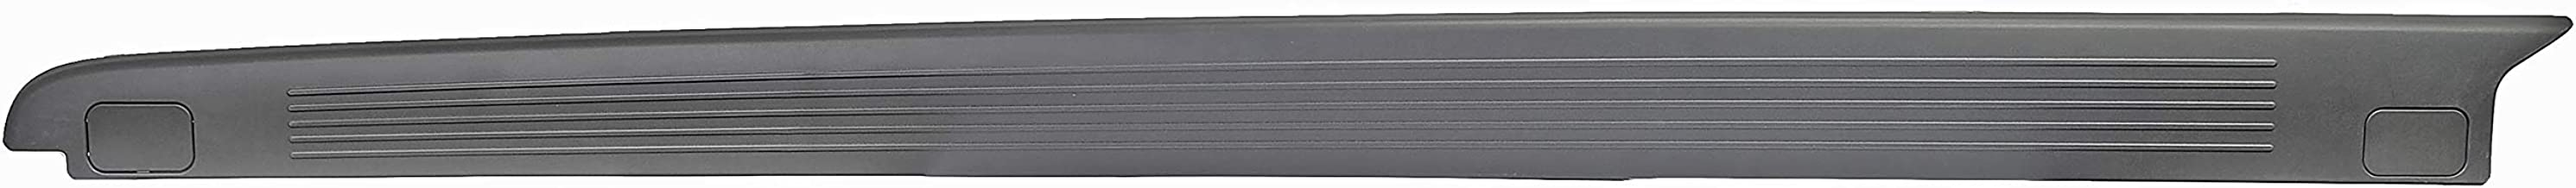 Dorman 926-935 Driver Side 6.5 Foot Bed Rail Cover for Select Ford F-150 Models